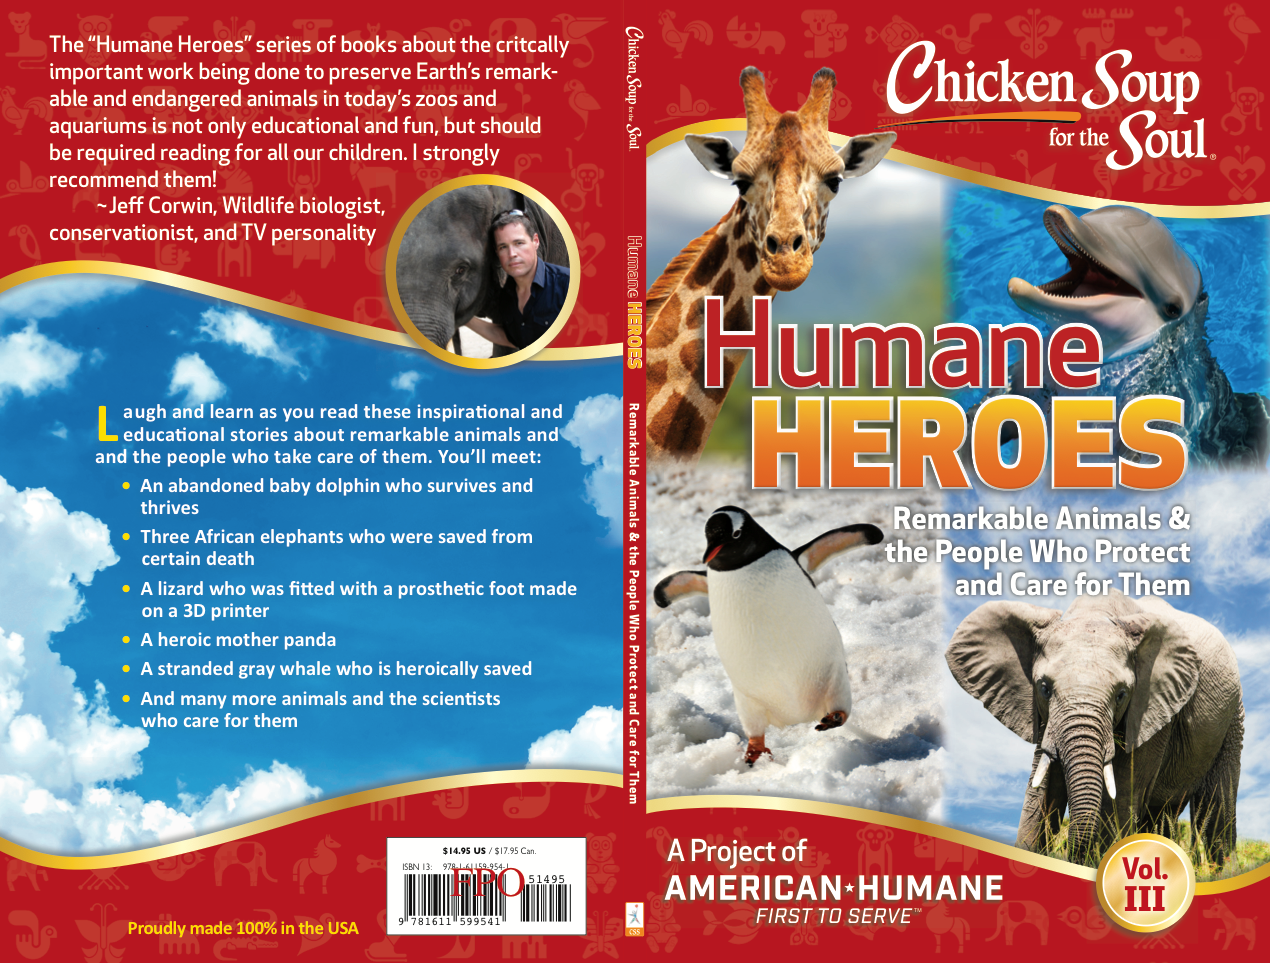 Chicken soup for the soul humane heroes vol 3